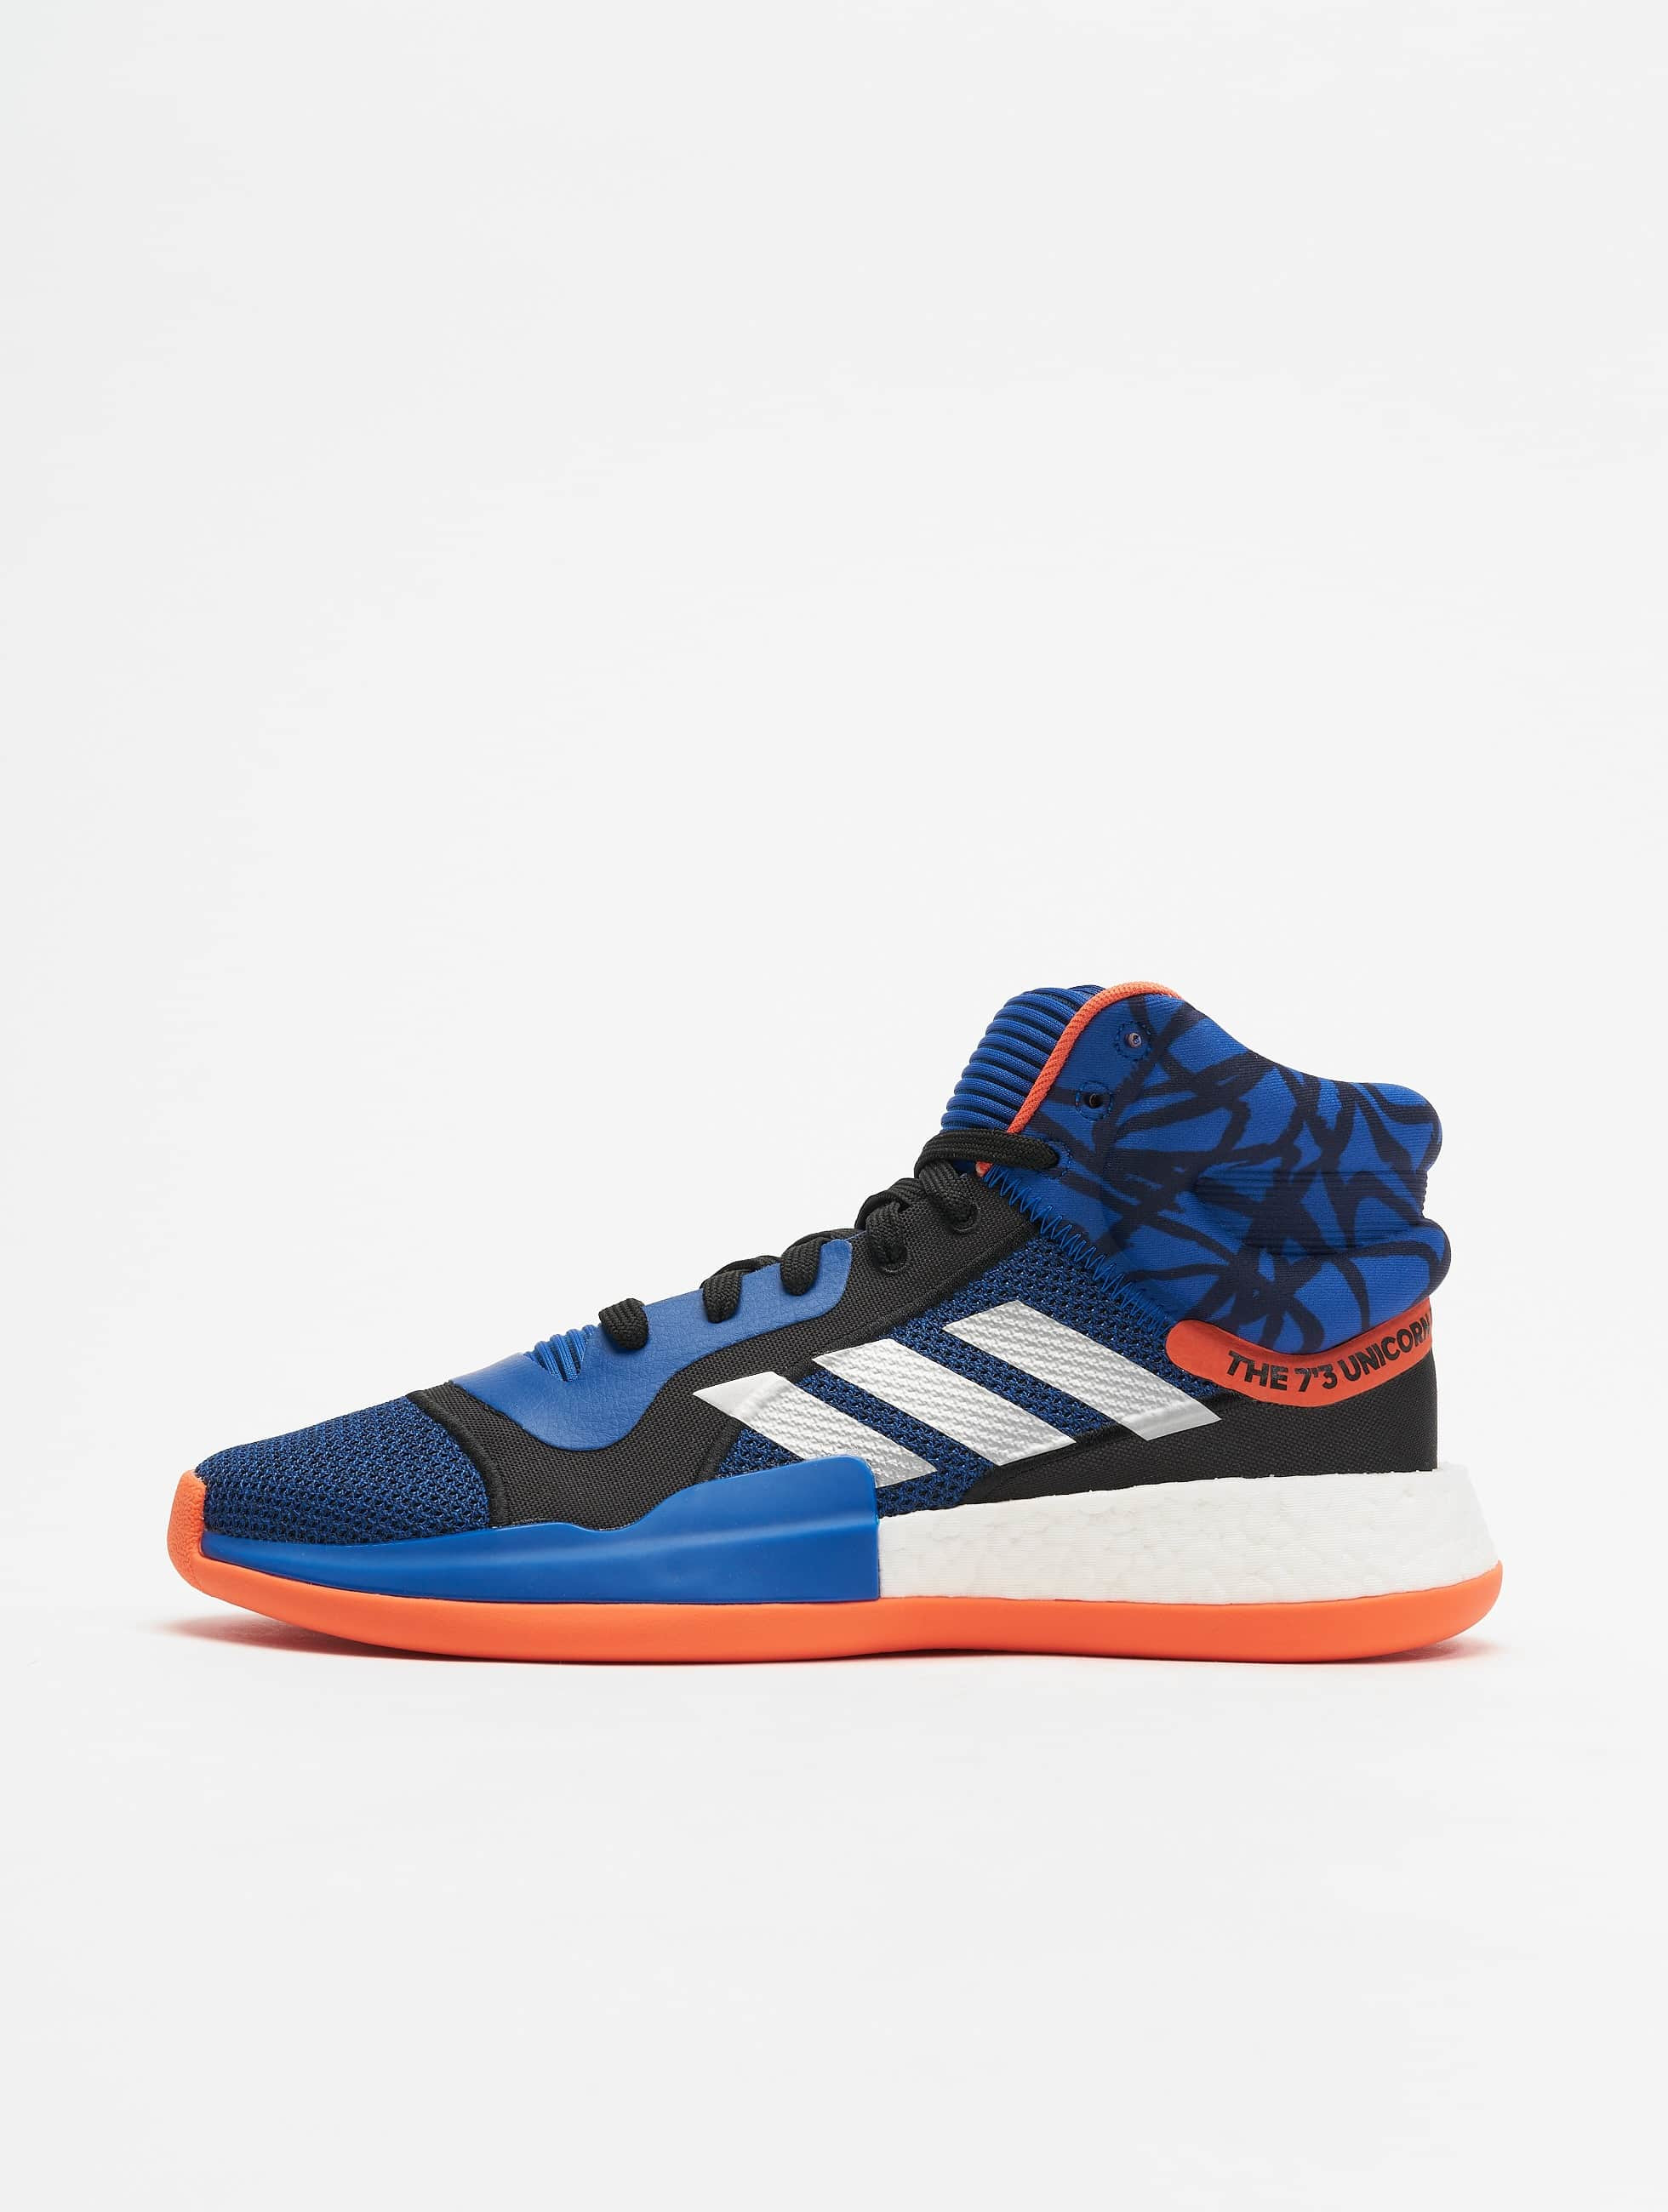 adidas Marquee Boost Basketball Shoes Core RoyalCore BlackTrue Orange